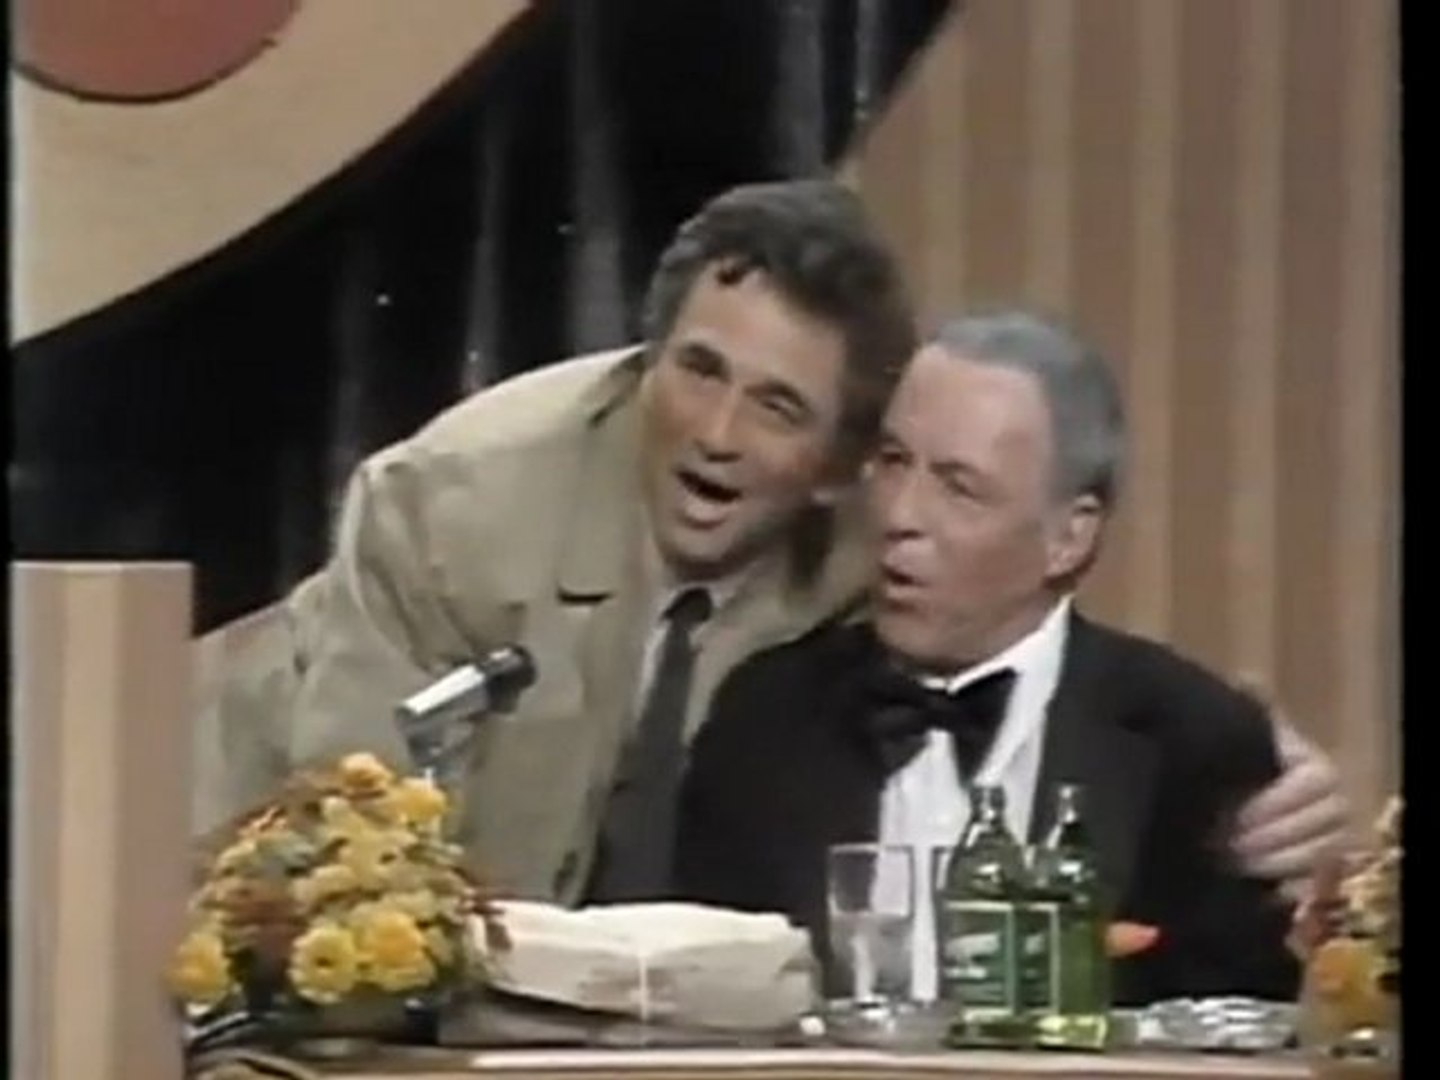 Peter Falk as 'Columbo' roasts Frank Sinatra